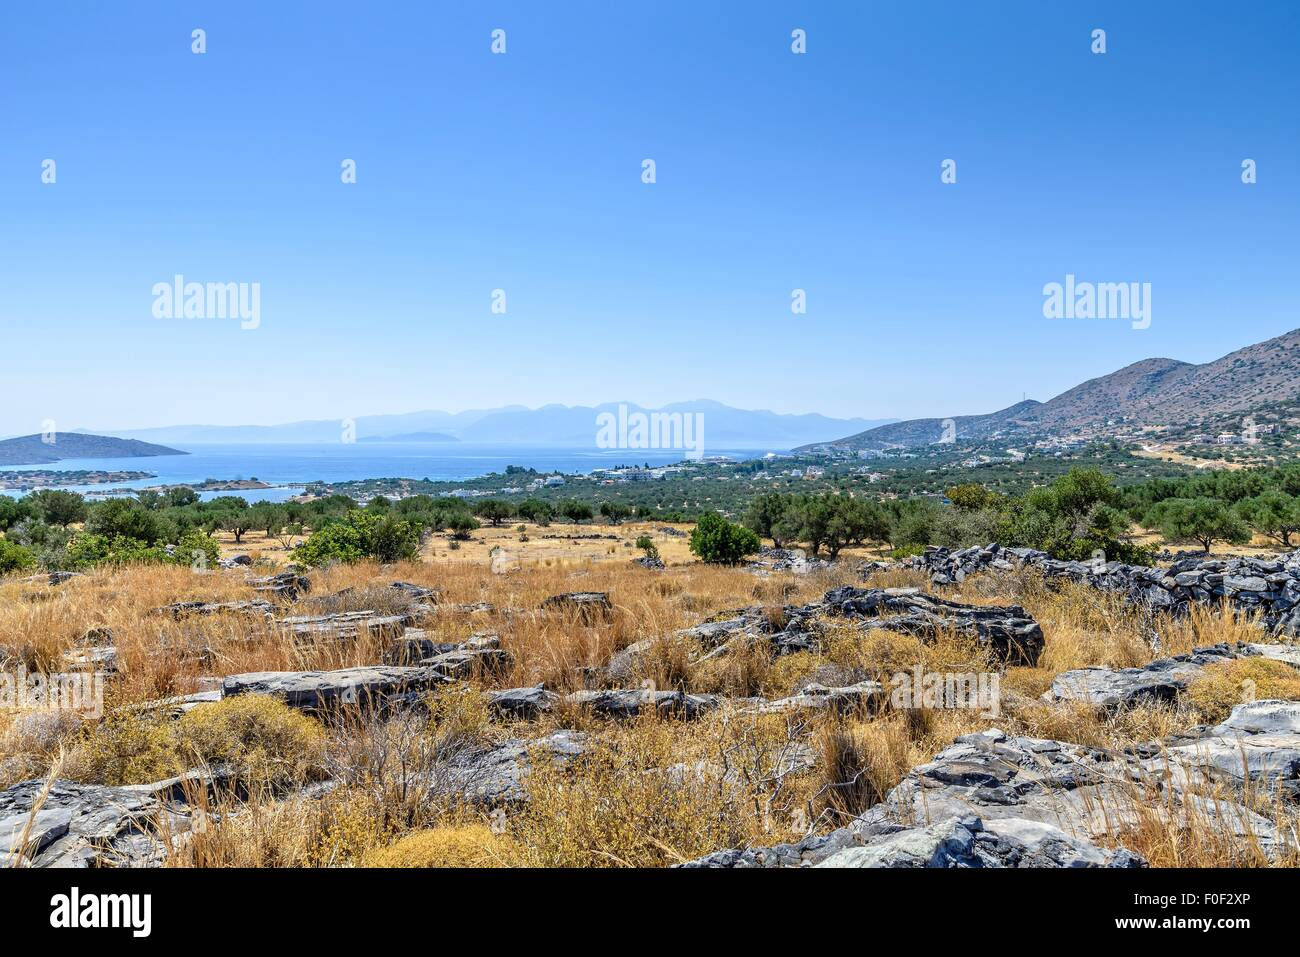 Scrub area looking towards the sea and distant hills with rocks in the foreground. - Stock Image